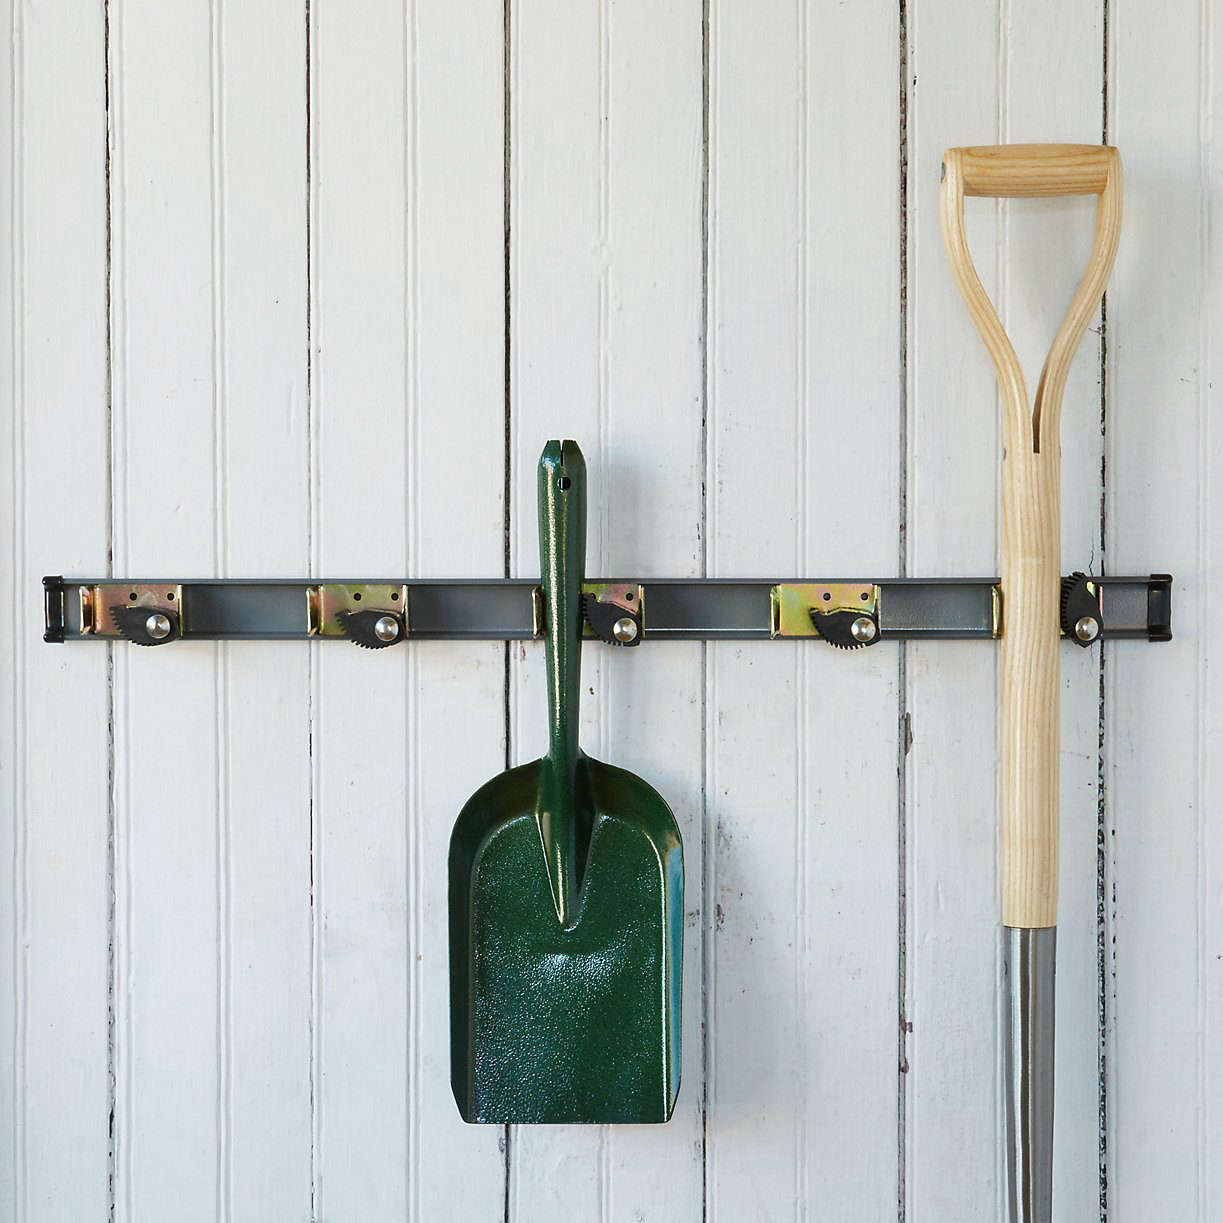 10 Easy Pieces Wall Mounted Tool Racks Gardenista